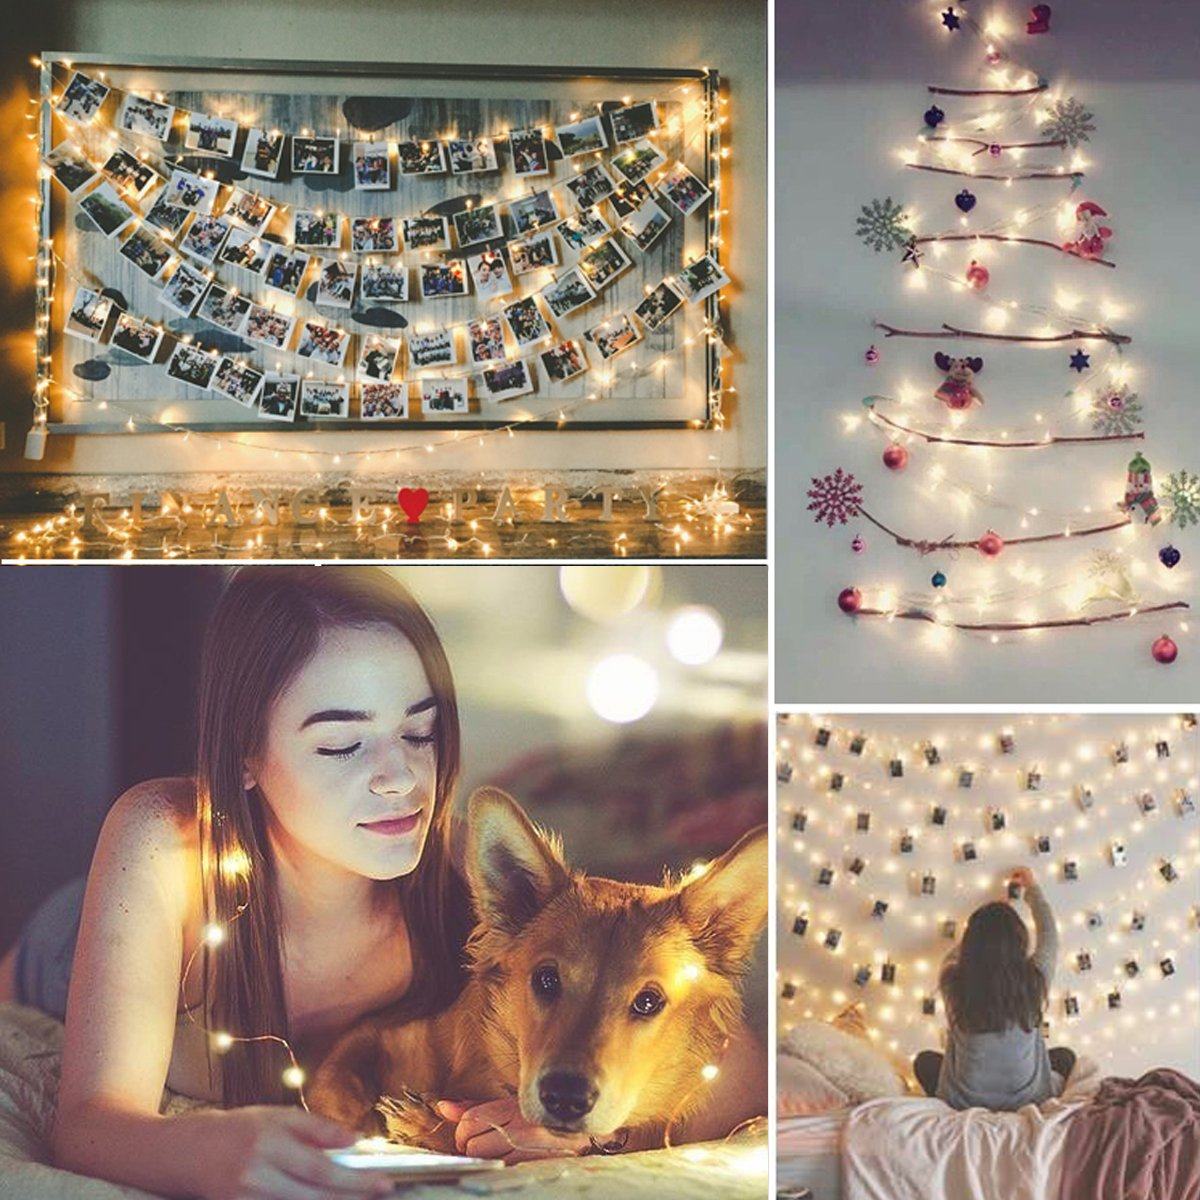 AMIR Solar Powered String Lights, 100 LED Copper Wire Lights, Starry String Lights, Indoor/Outdoor Waterproof Solar Decoration Lights for Gardens, Home, Dancing, Party Decorative Ornaments(Warm White)